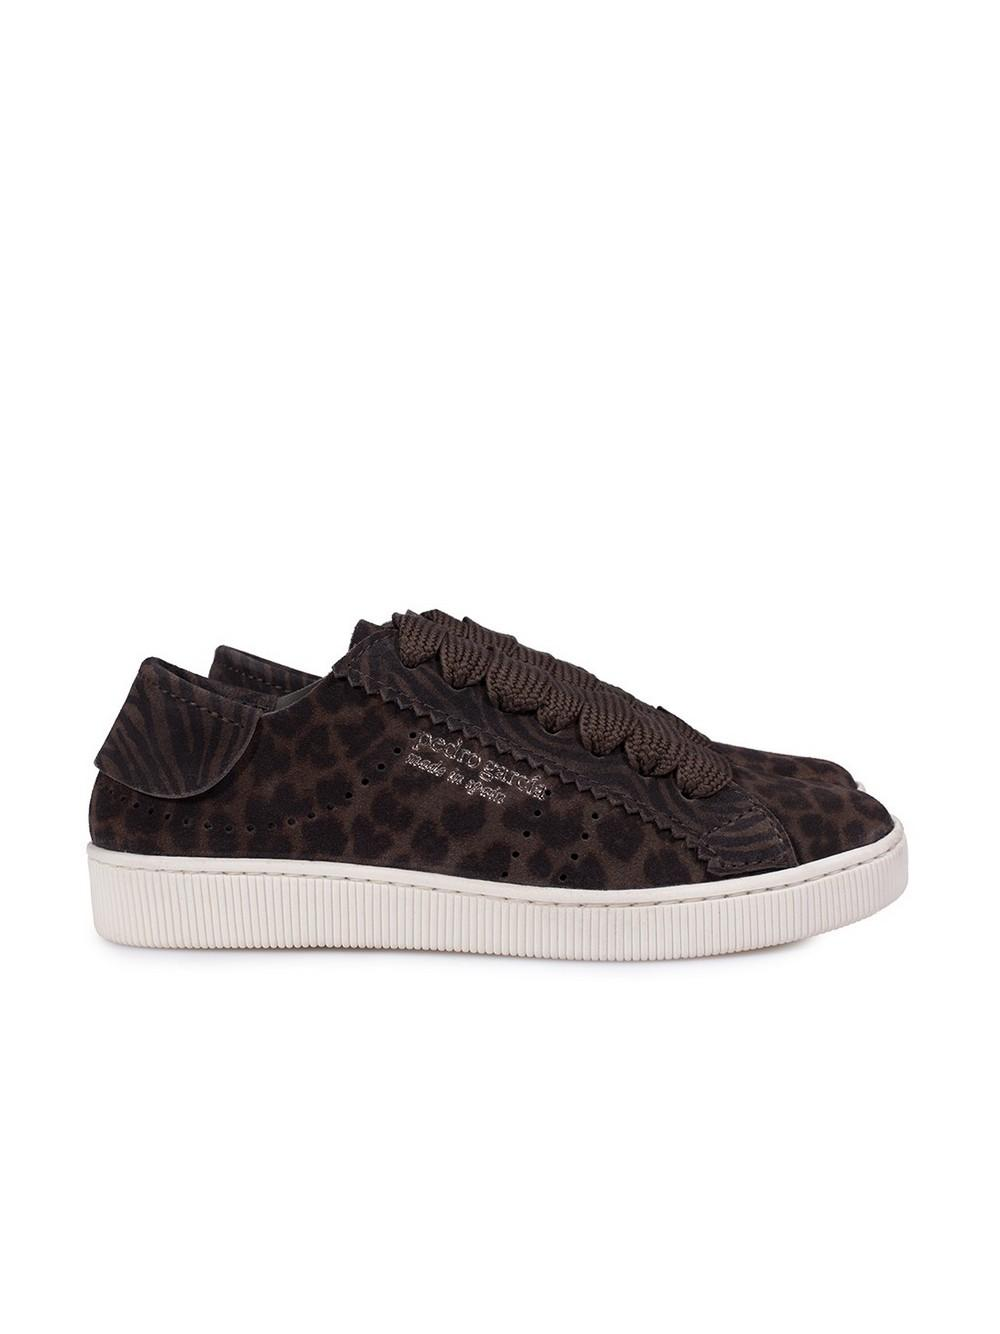 Perry Animal Print Sneaker Item # PERRY-LZ